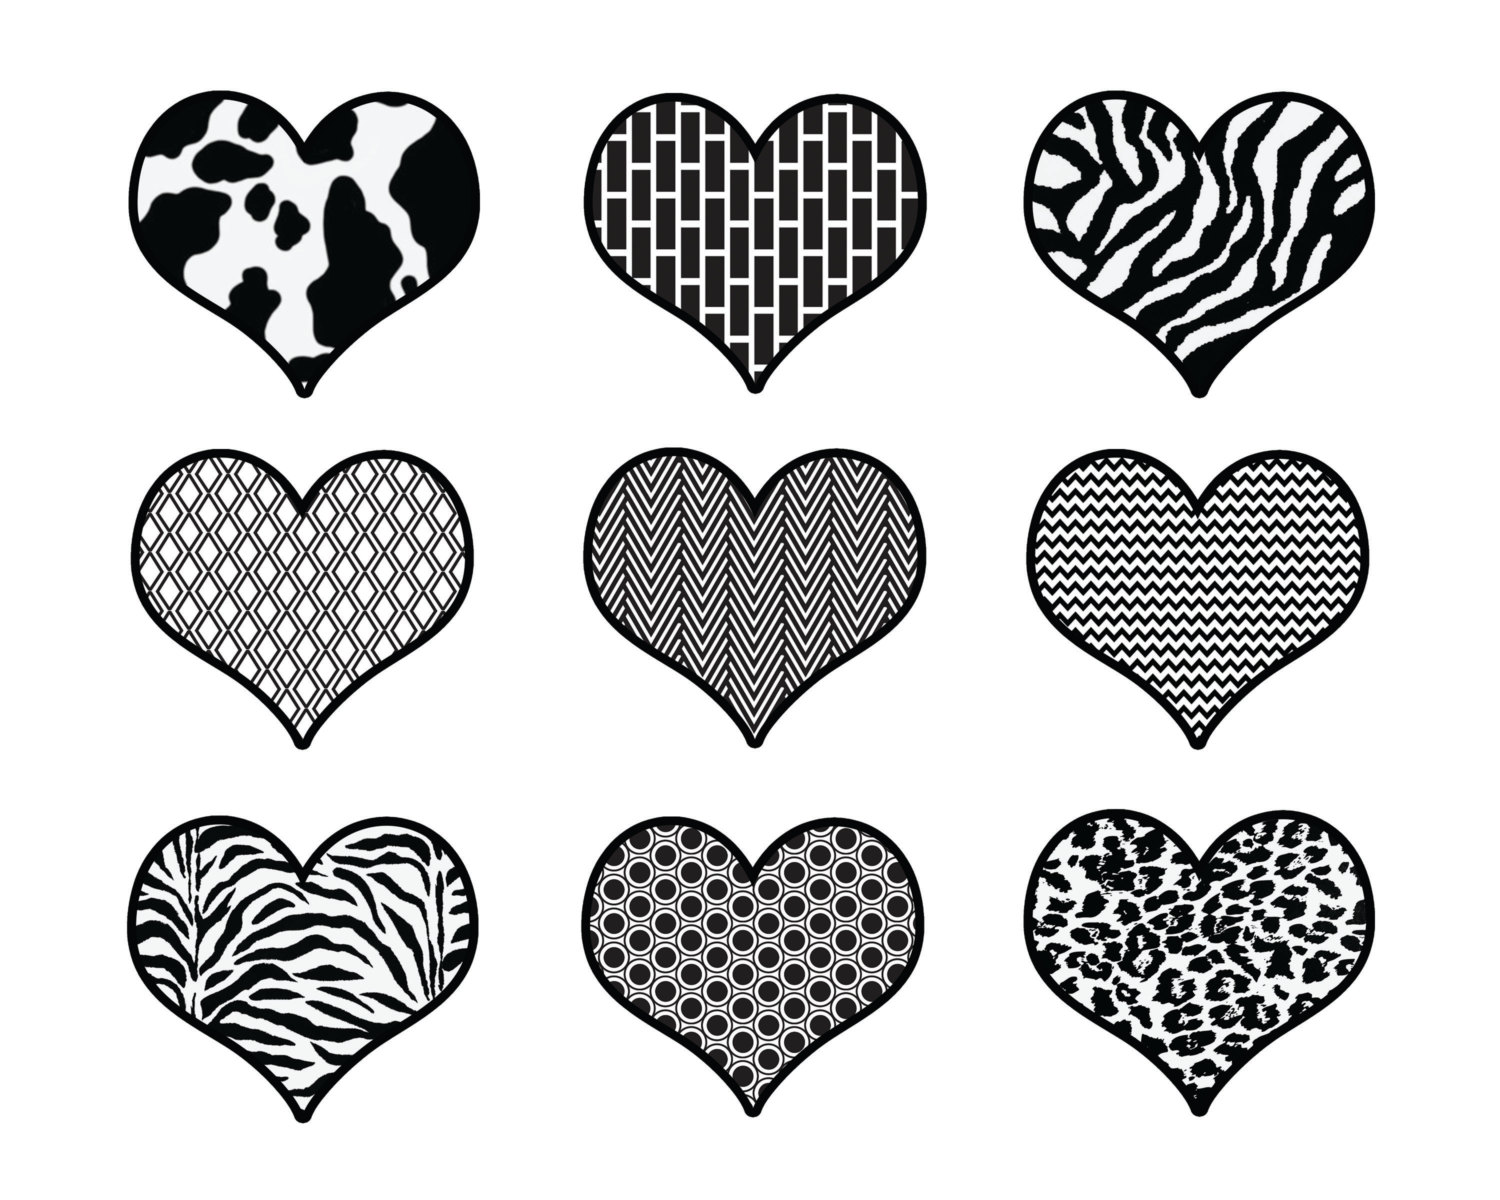 February black and white clip art february black and white 5.